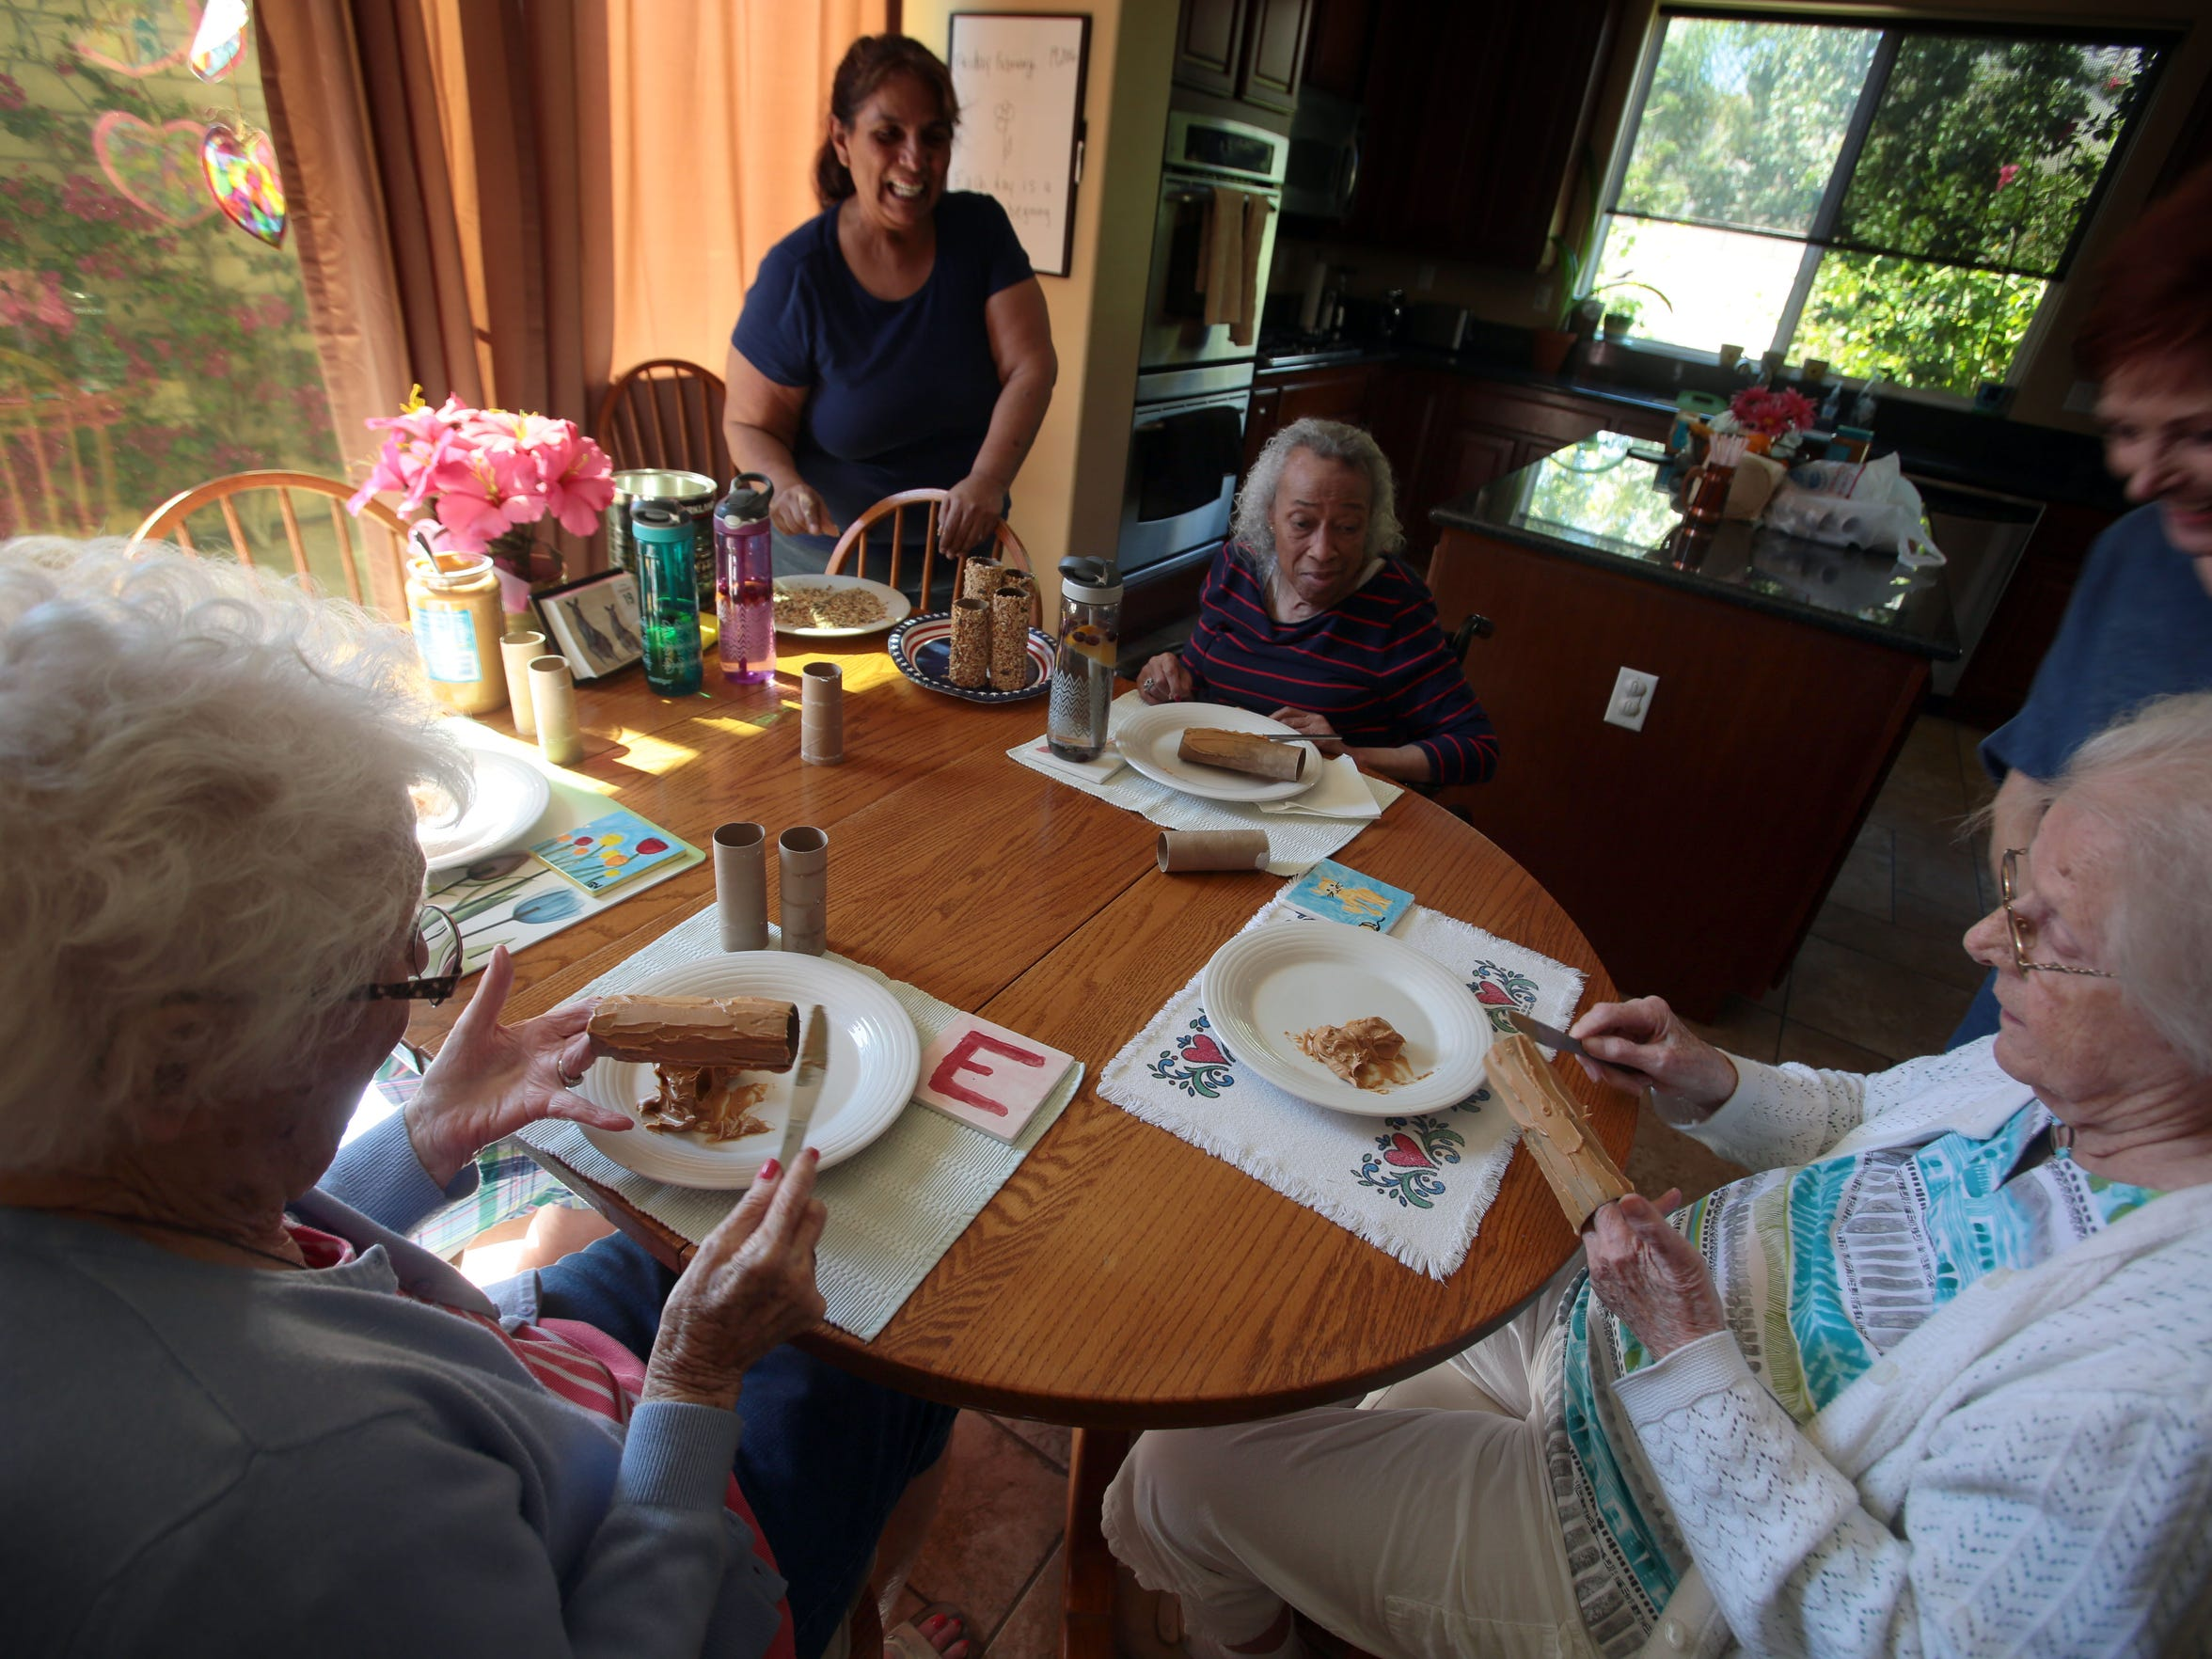 Seniors smear peanut butter on toilet paper rolls to make  bird feeders, one of several daily activities for them, in an assisted living facility in La Quinta on Friday, February 19, 2016.